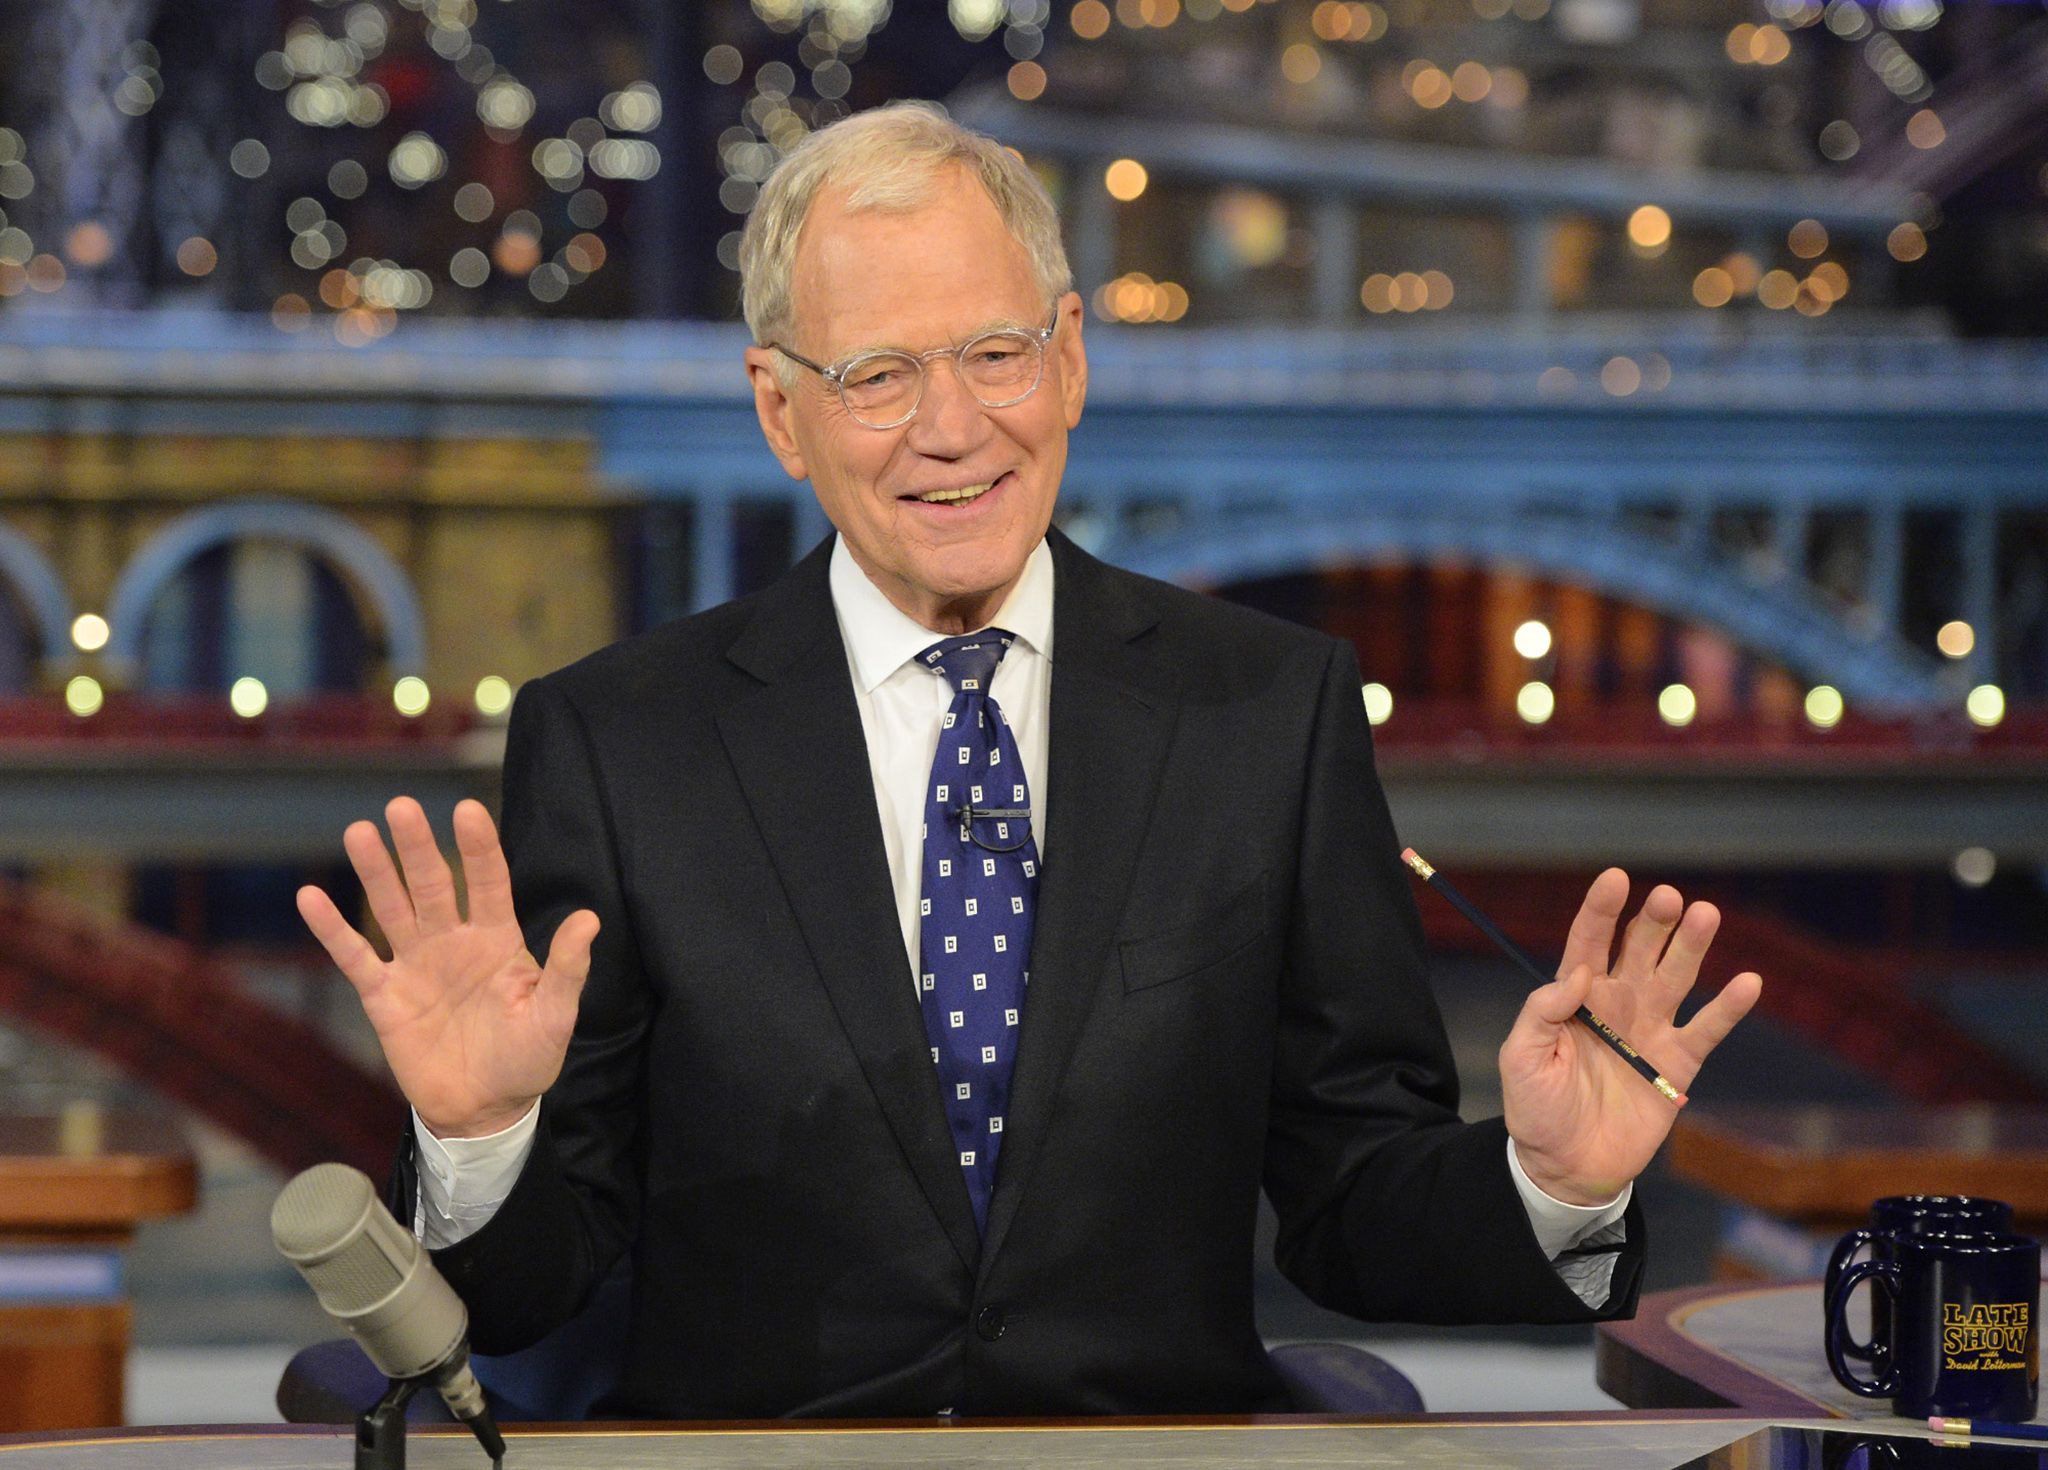 Behind David Letterman's New TV Climate Series Gig | National Geographic